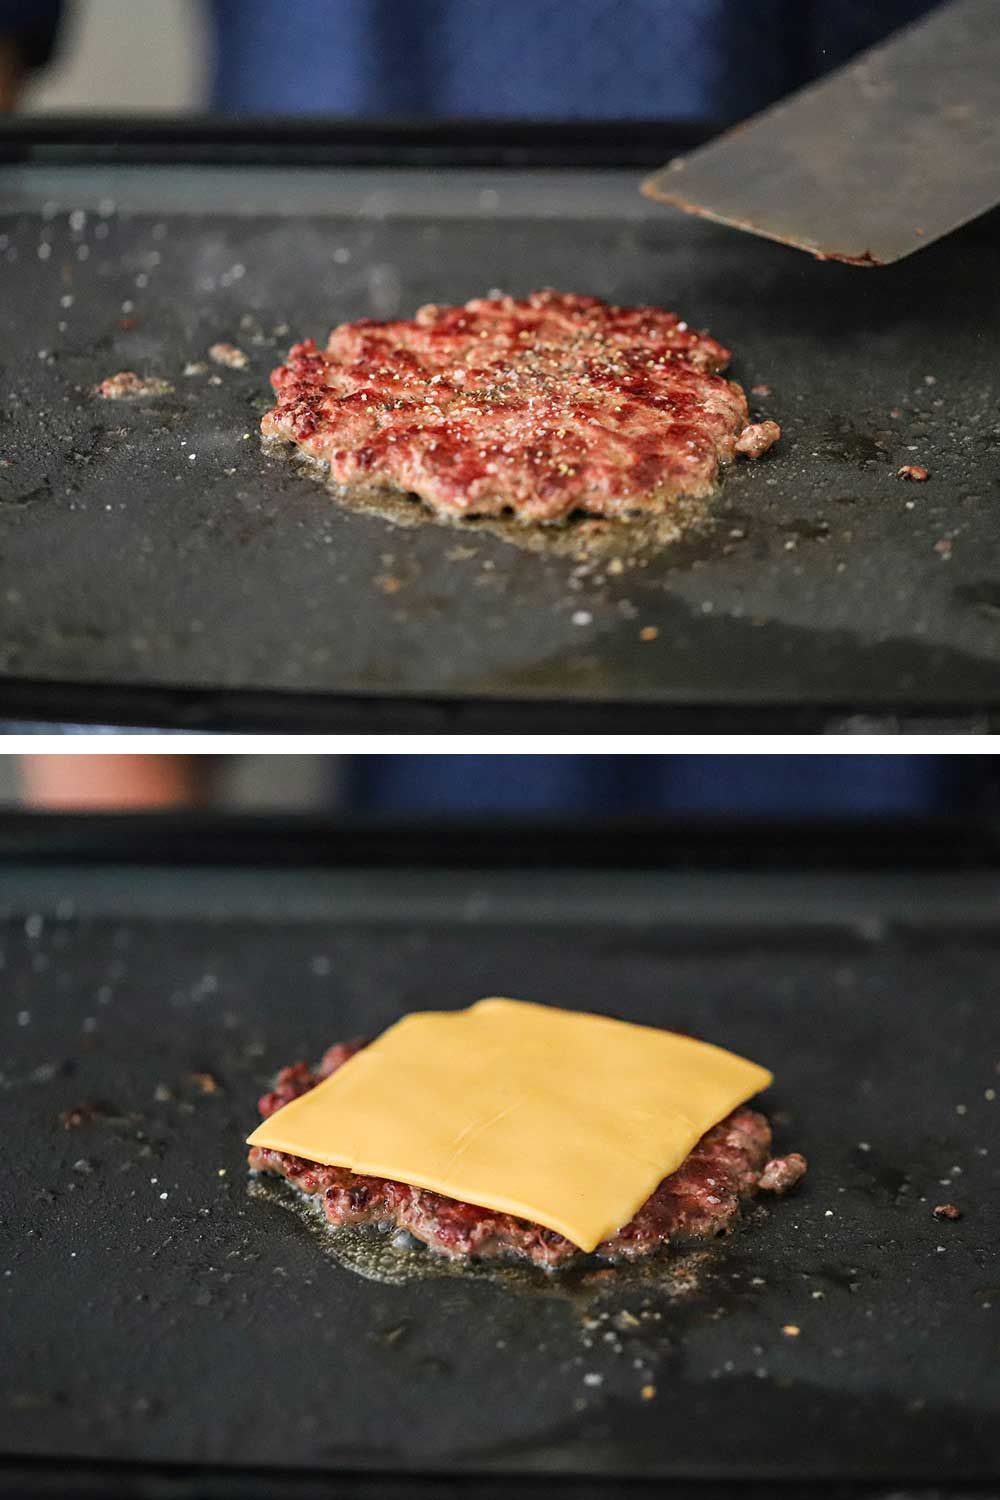 A smash burger that has been flipped on a sizzling griddle and then that same burger with a slice of American cheese placed on top of it.